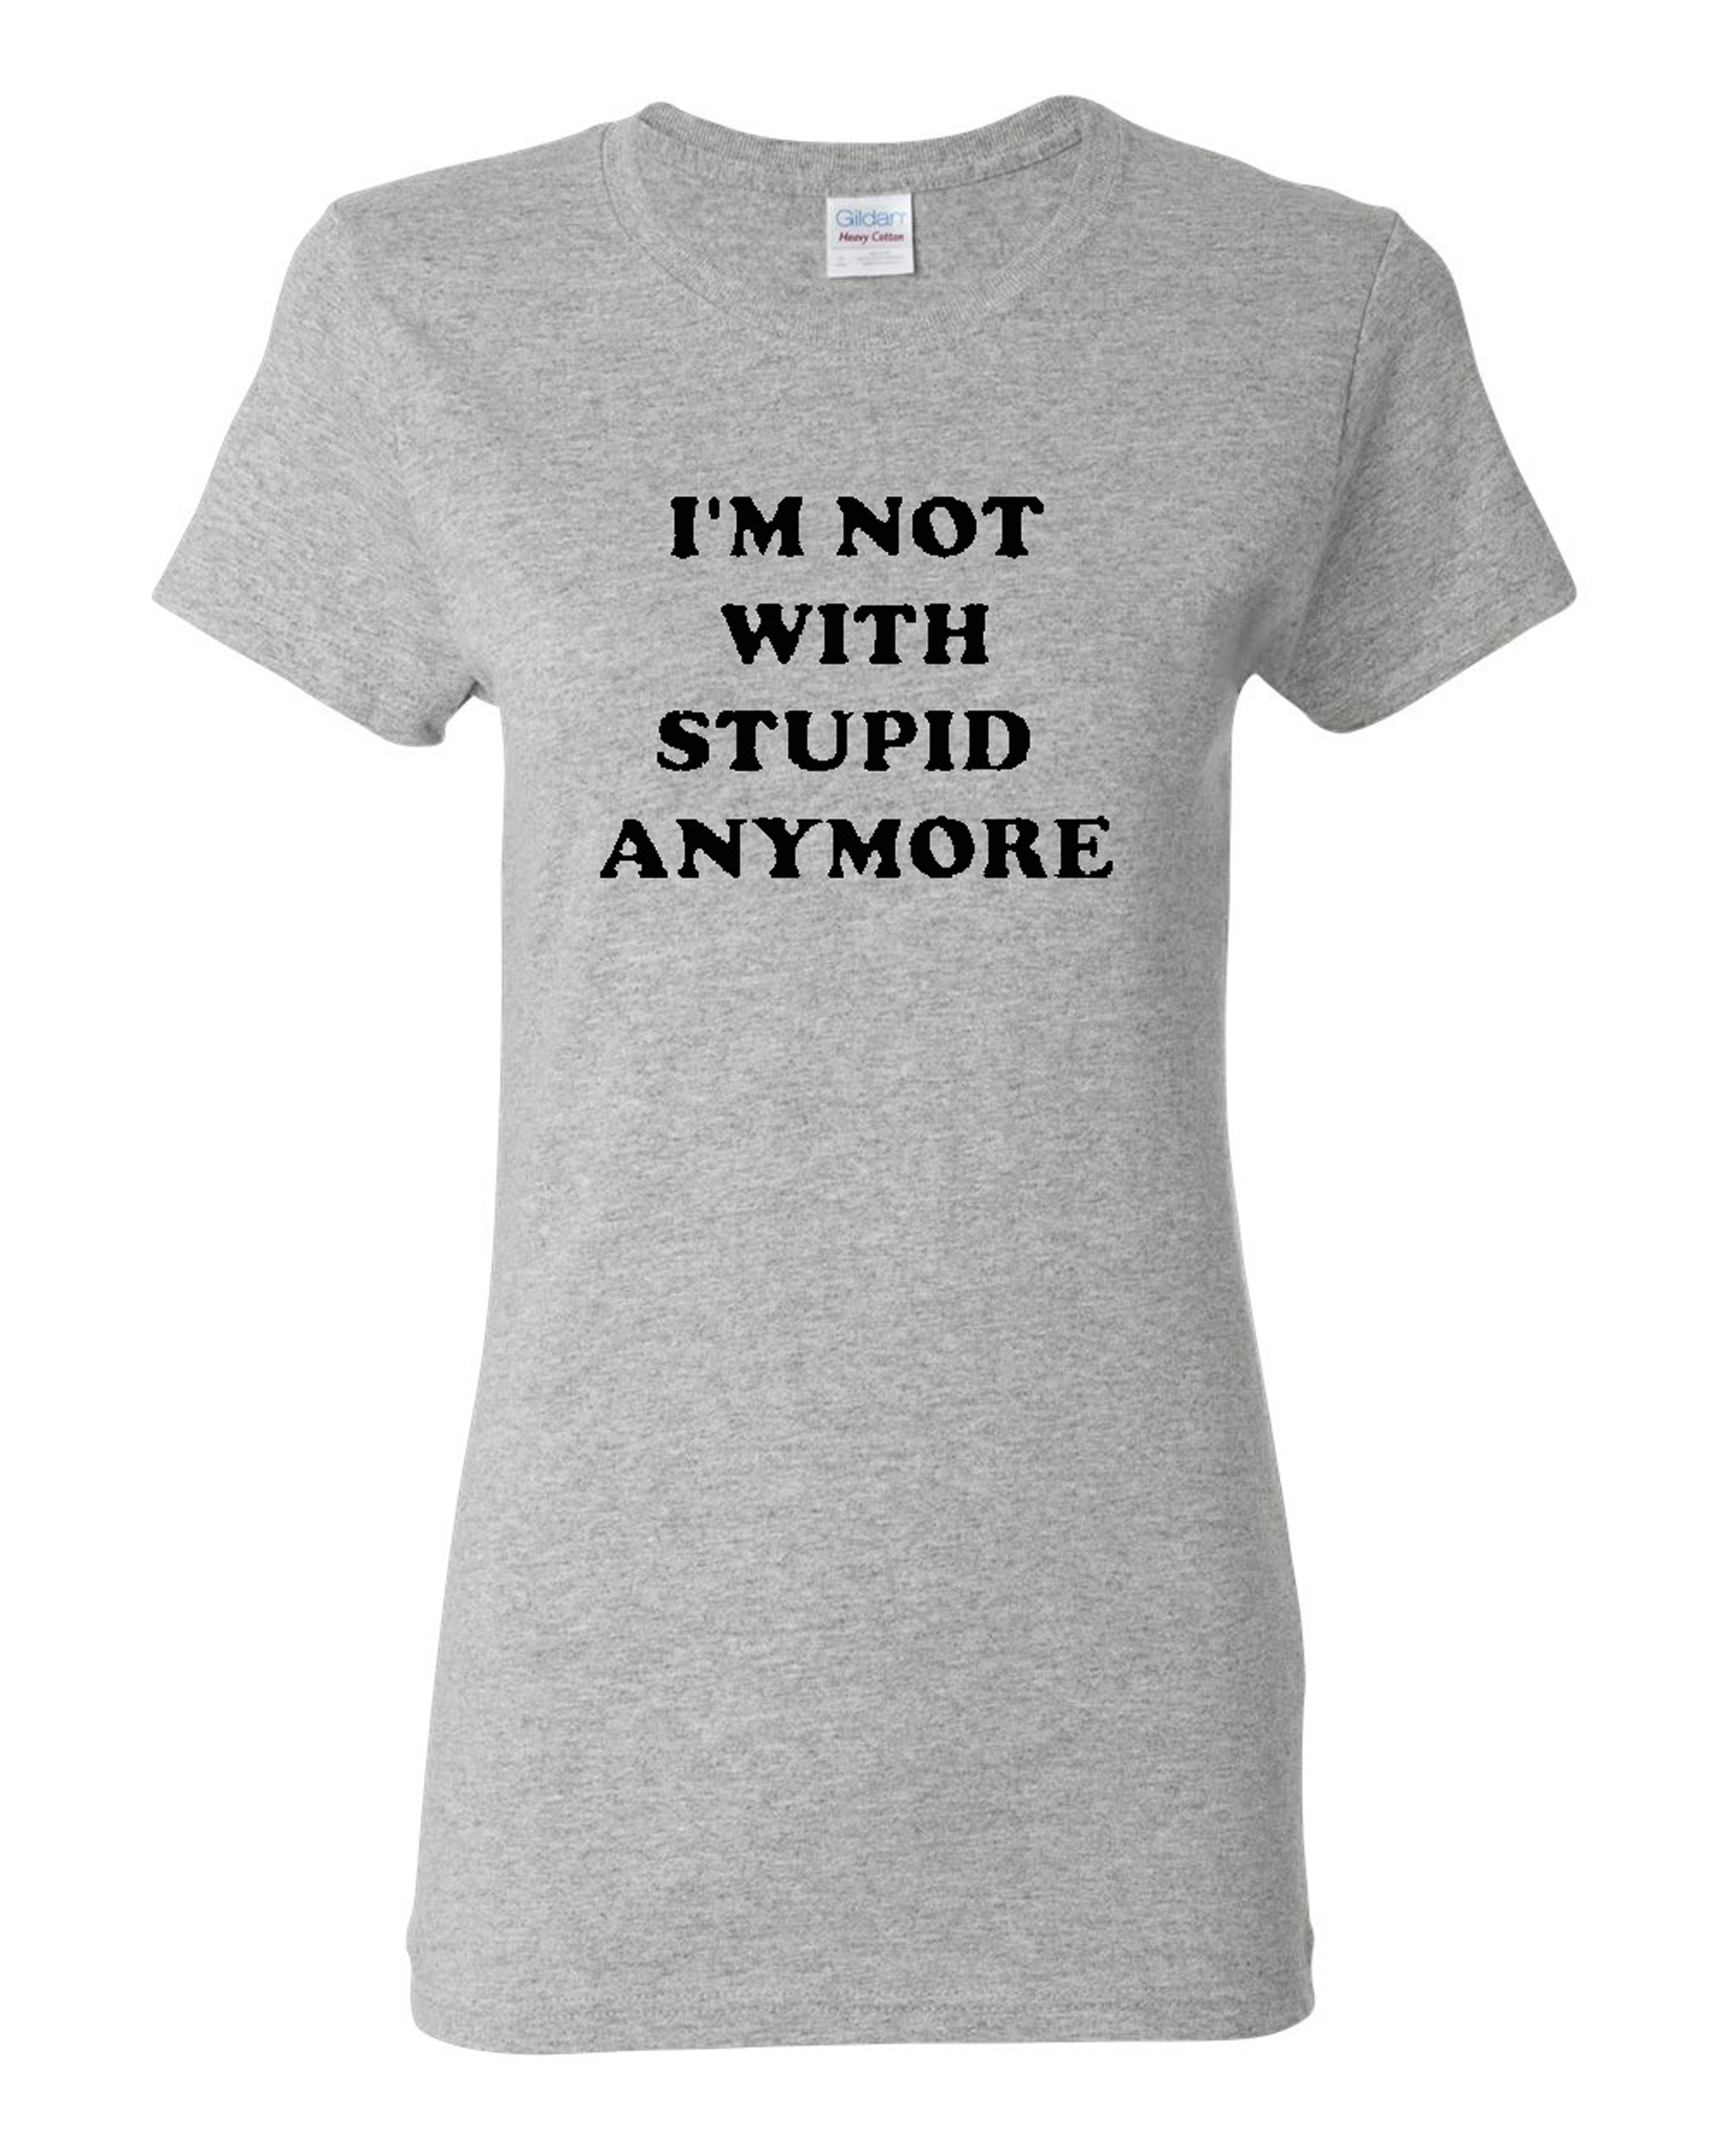 Ladies I'm Not With Stupid Anymore Funny Humor T-Shirt Tee